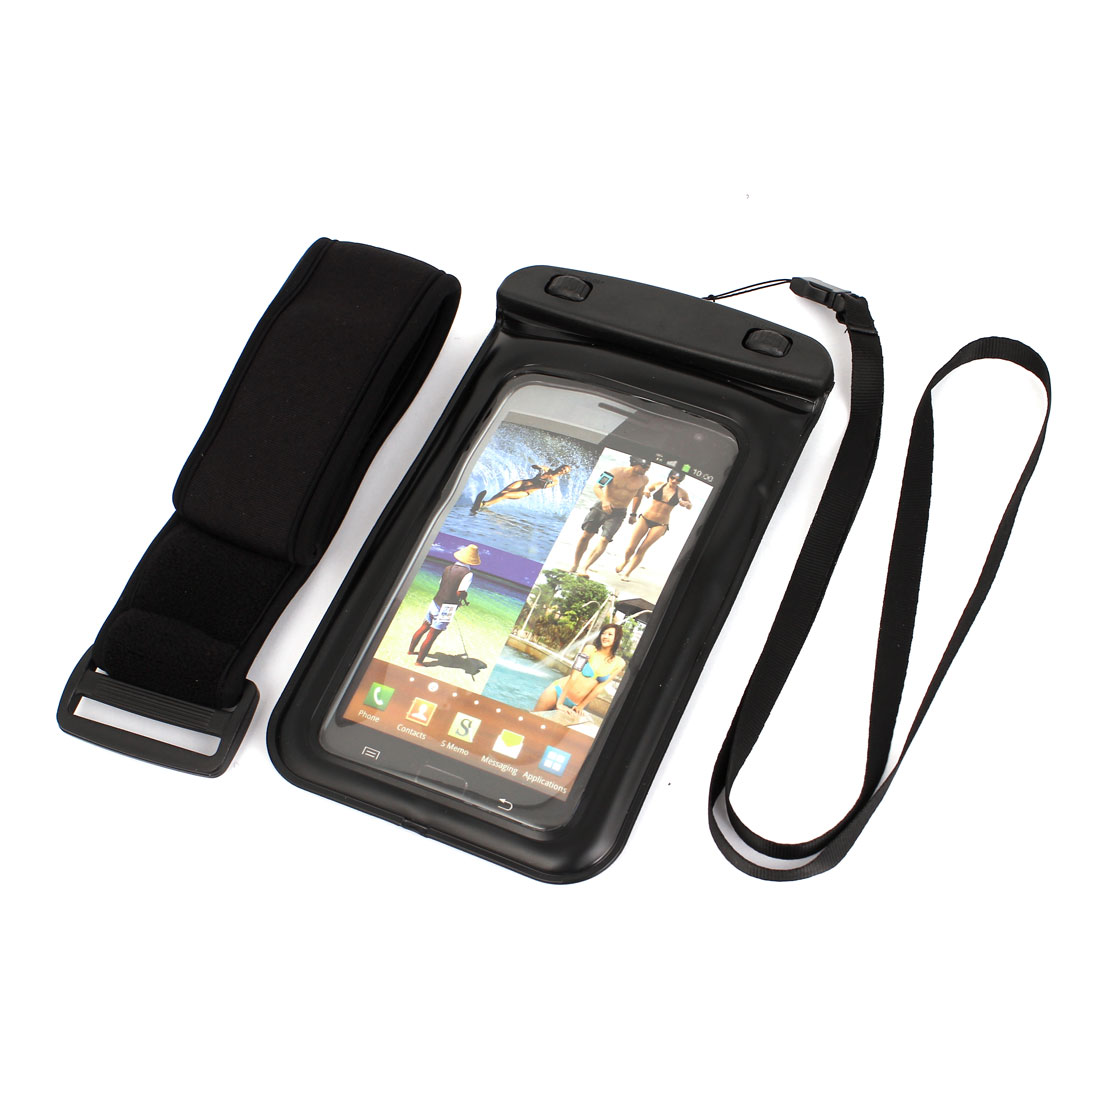 "Underwater Waterproof Case Dry Bag Cover Pouch + Strap for 5.5"" Cell Phone"